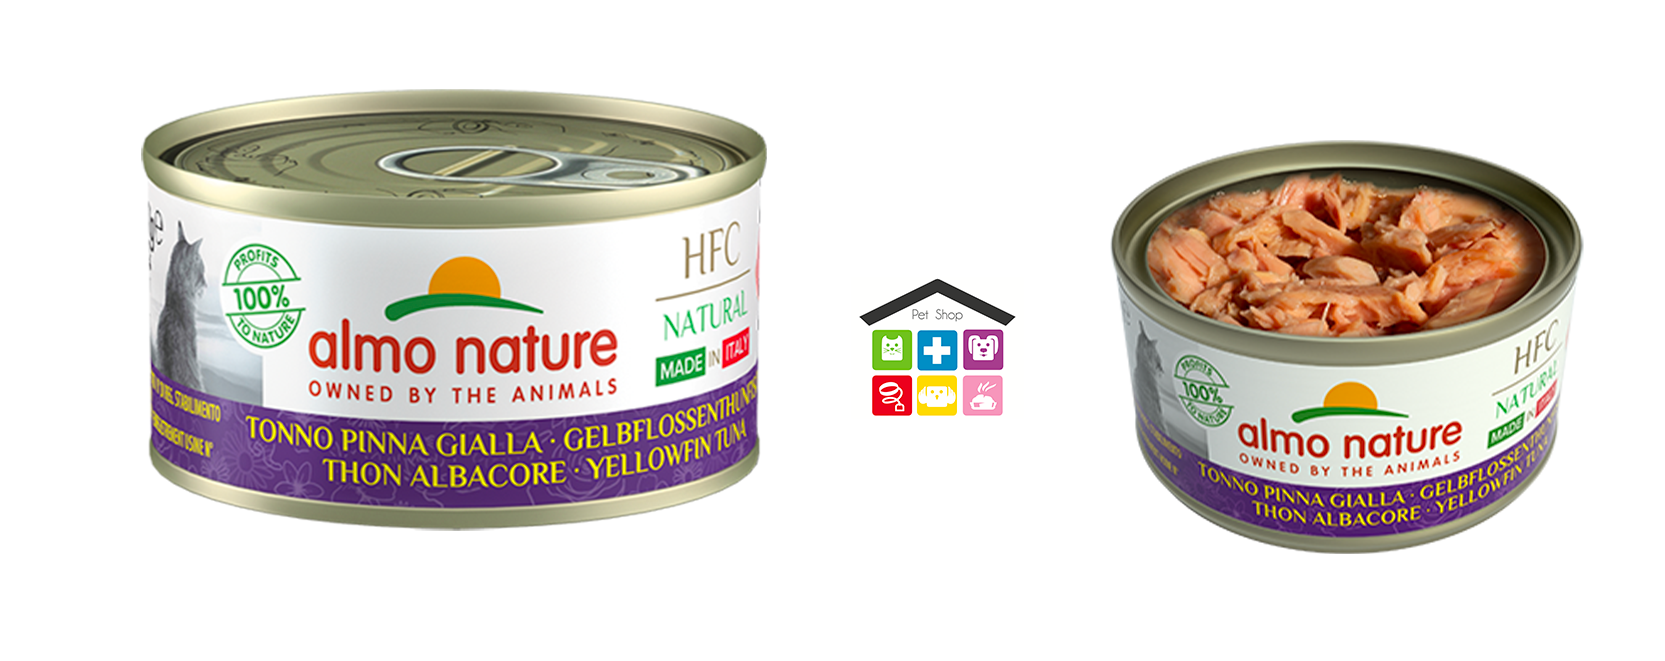 Almo nature HFC Natural Made in Italy Tonno Pinna Gialla 0,70g